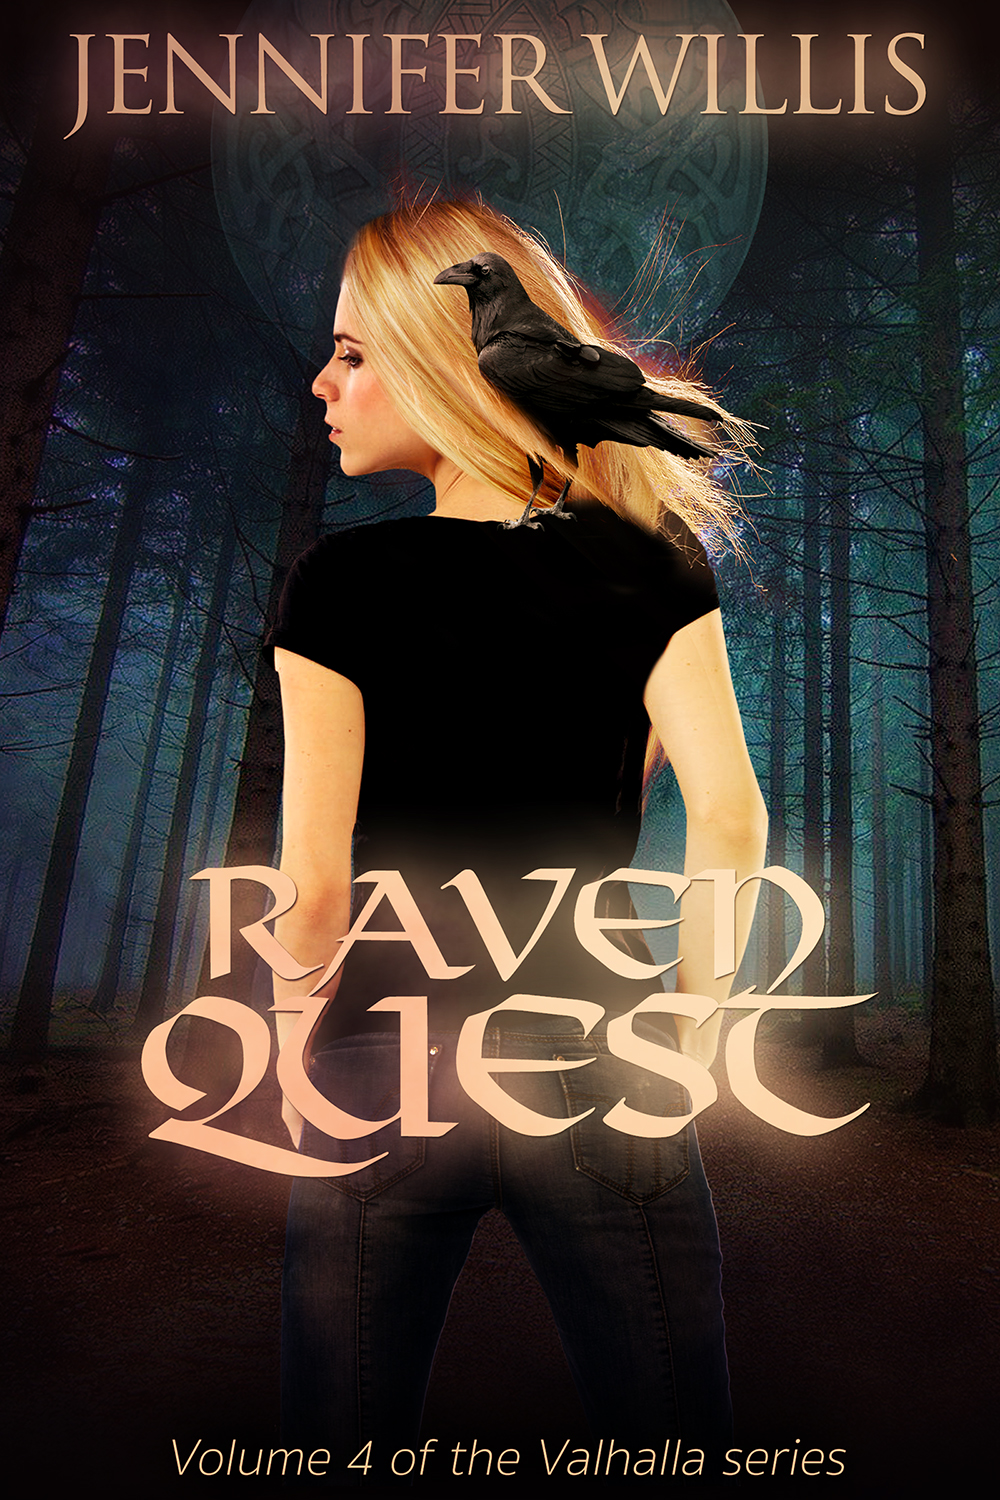 Raven Quest—Valhalla book 4—by Jennifer Willis